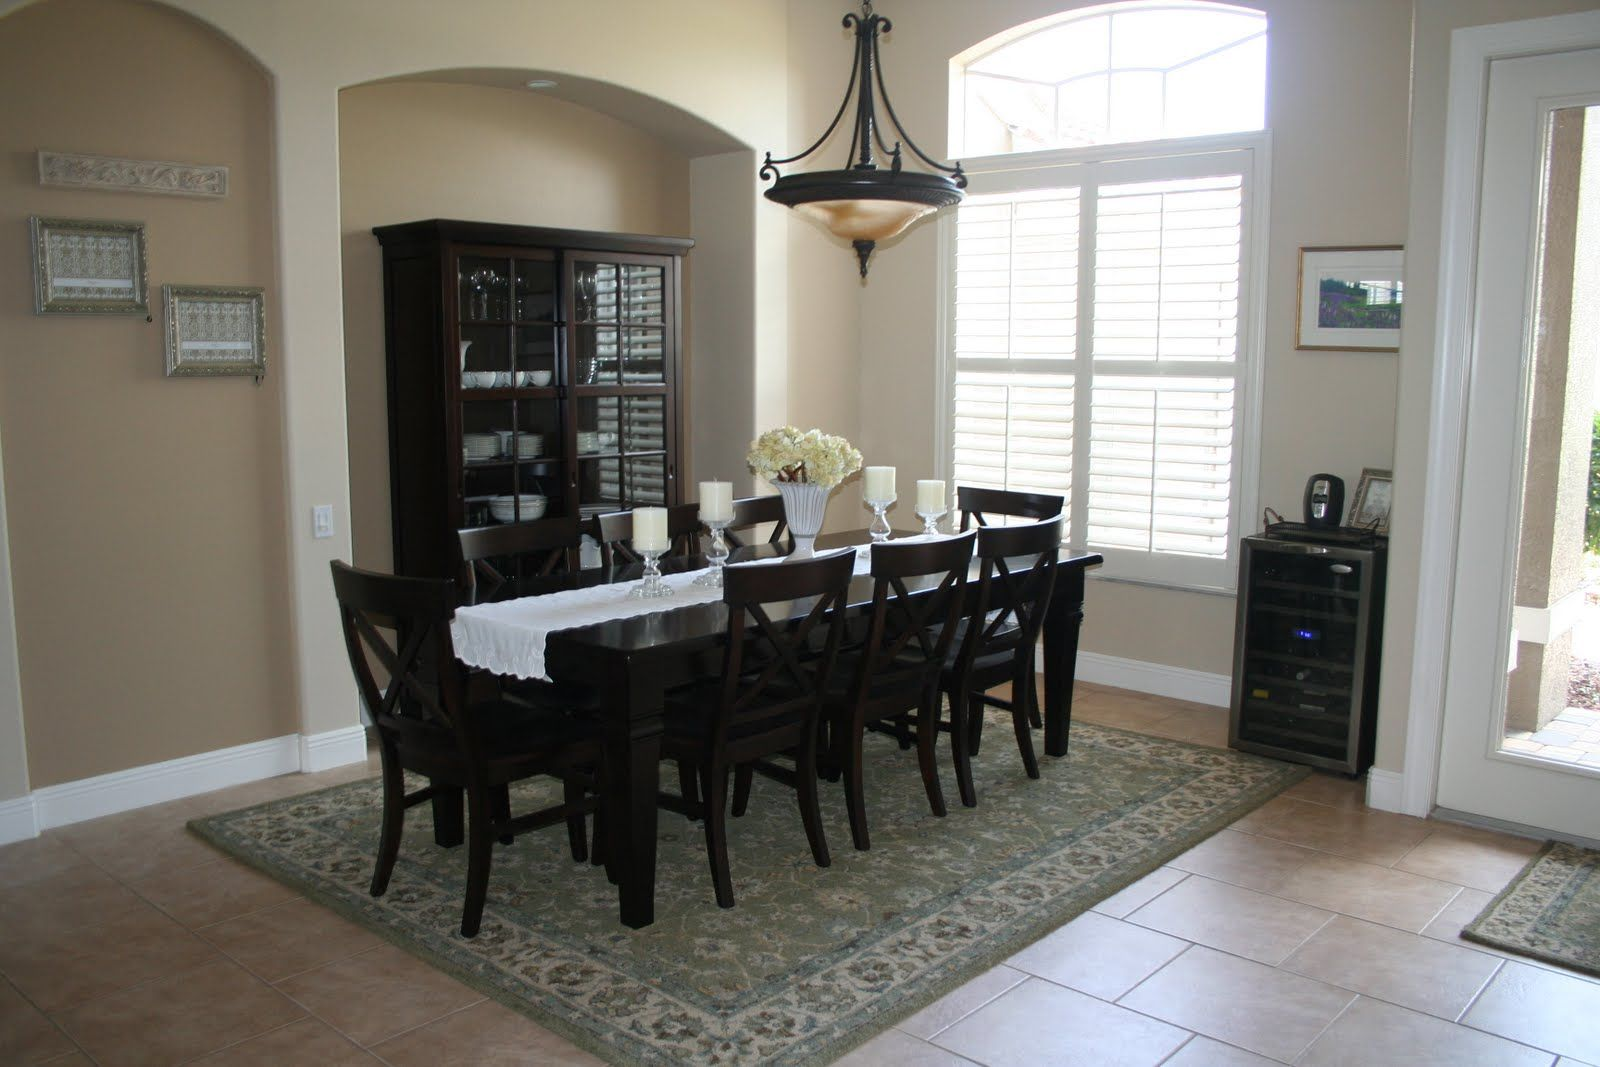 Sherwin williams basket beige photos - Reader Question Top 5 Paint Colors For Every Room In Your Home Sherwin Williams Kilim Beige Benjamin Moore Match Hush Crisp Khaki Is A Close Match Too